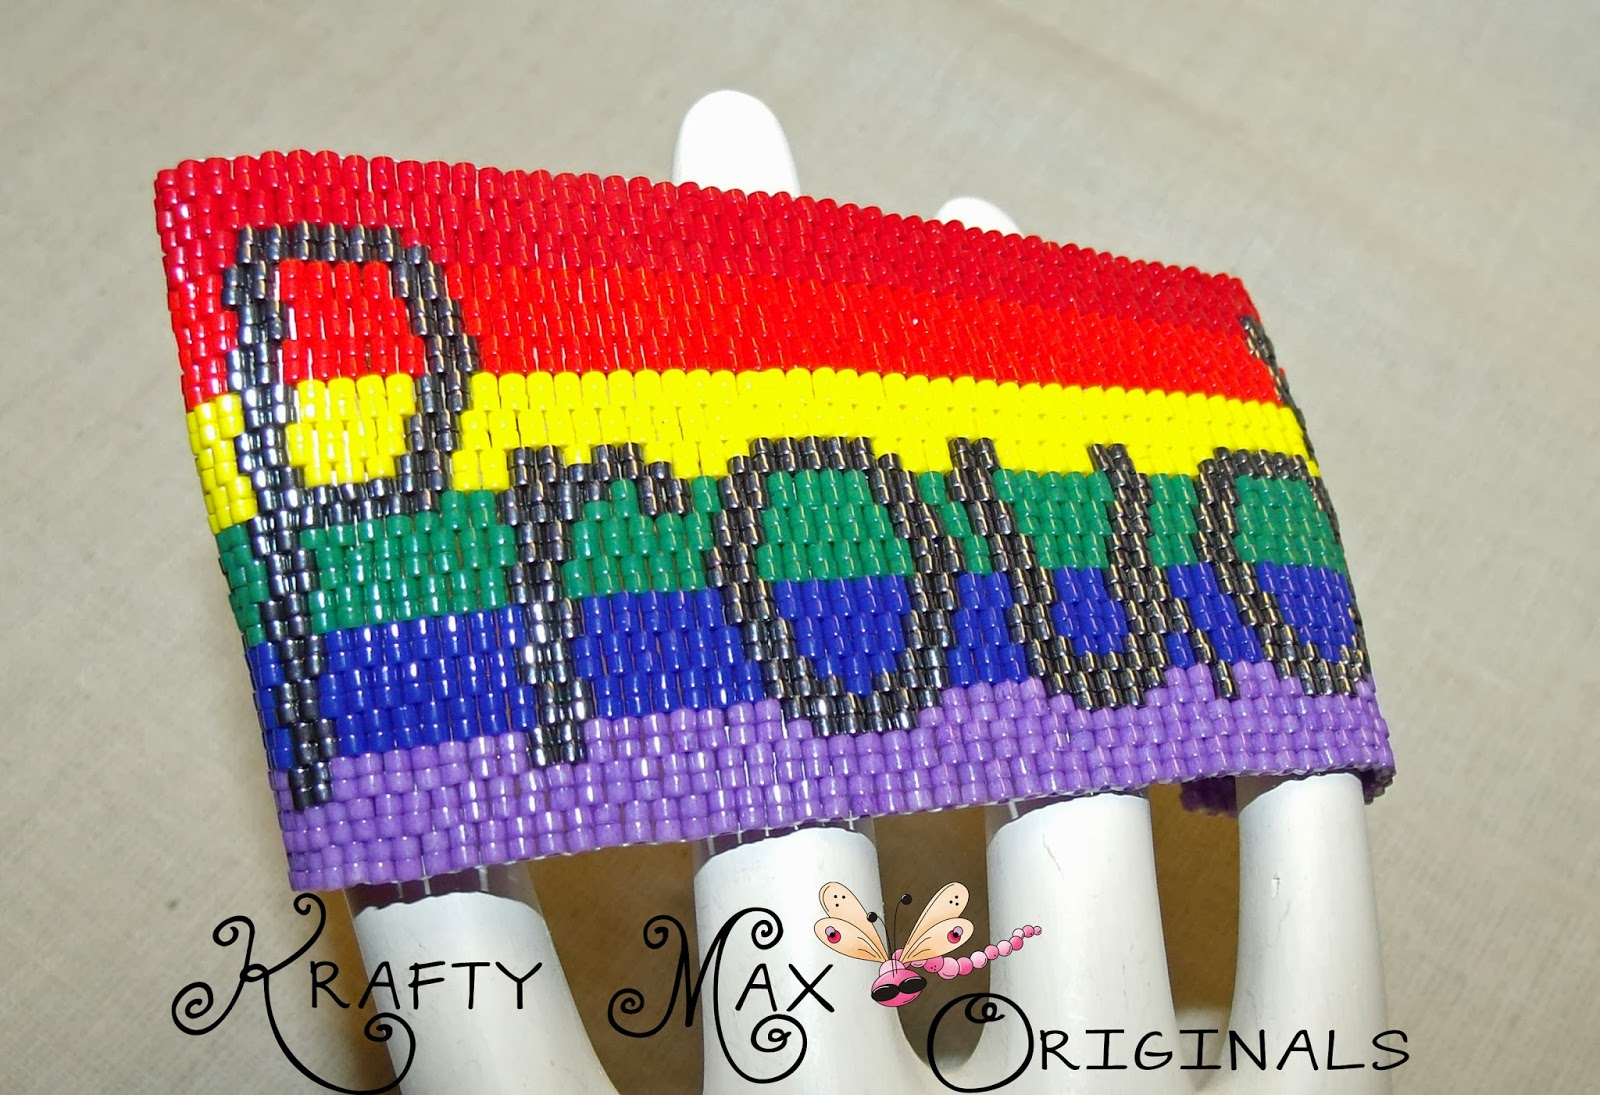 http://www.lajuliet.com/index.php/2013-01-04-15-21-51/ad/beaded,49/exclusive-rainbow-proud-pride-handmade-beadwoven-bracelet-a-krafty-max-original-design,252